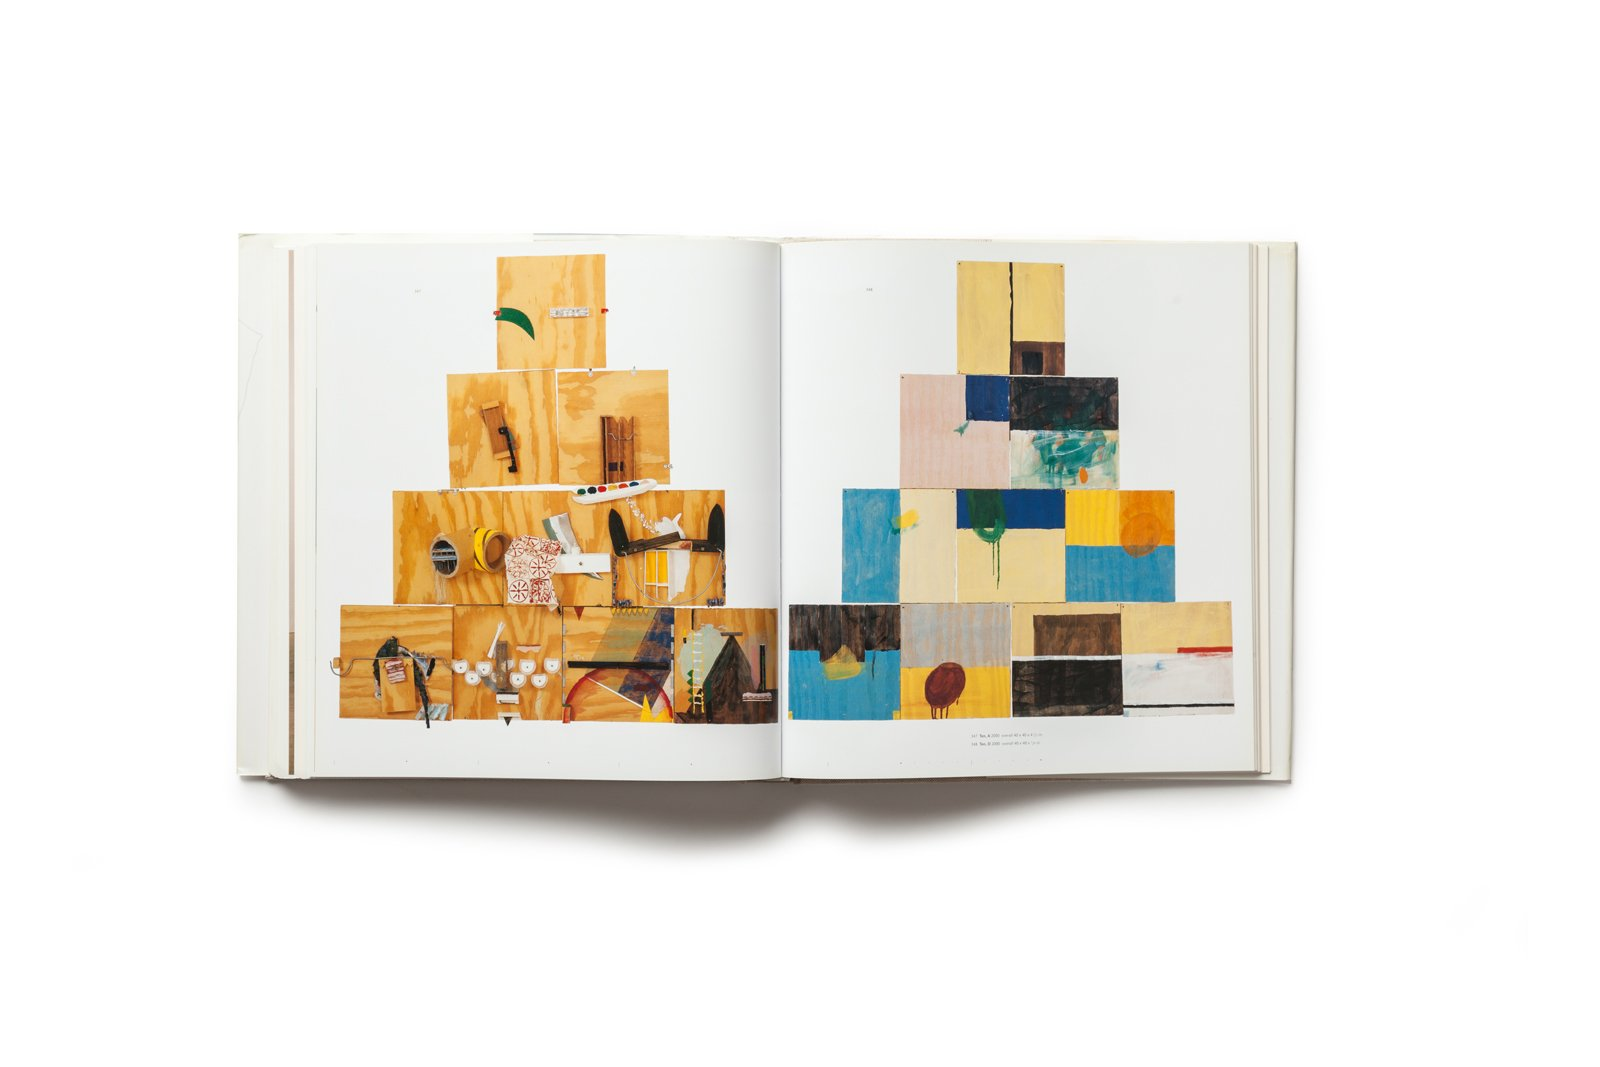 The Art of Richard Tuttle publication plates 347-348